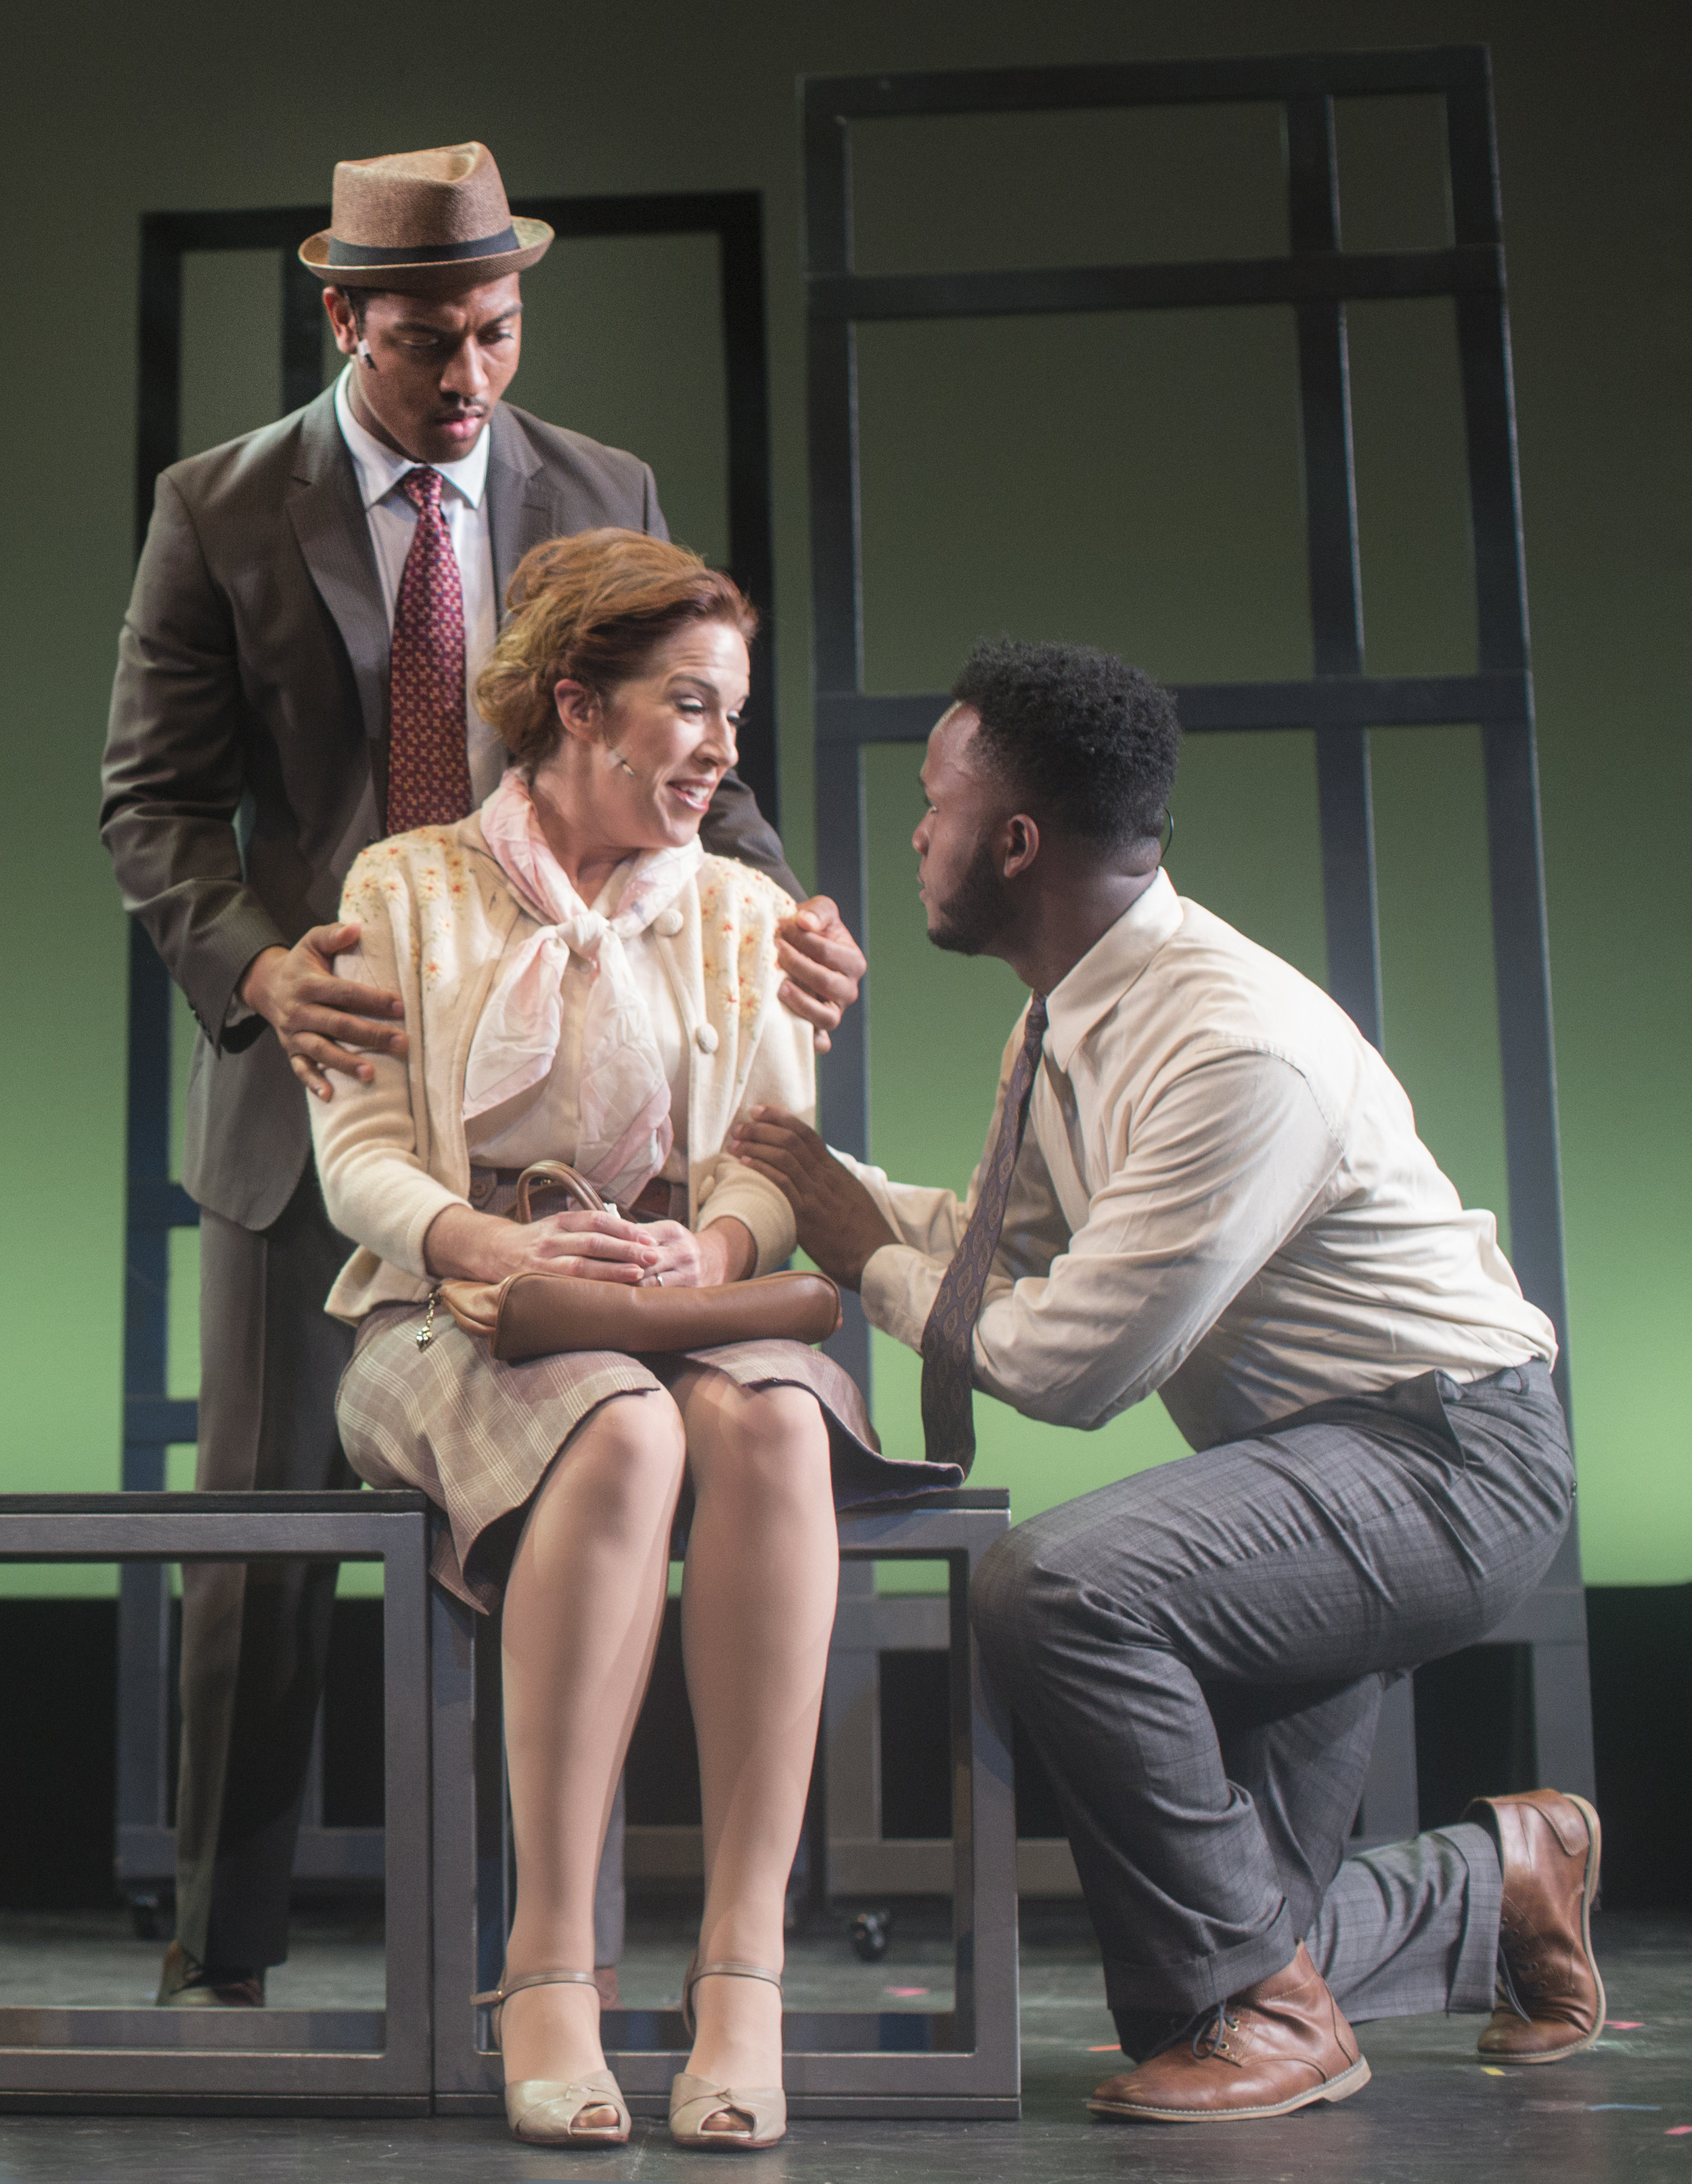 Nygel Deville Robinson, Joy Yandell Hricko and Deon'te Goodman in FREEDOM RIDERS at NYMF 2017 - photo by Mia Winston.jpg